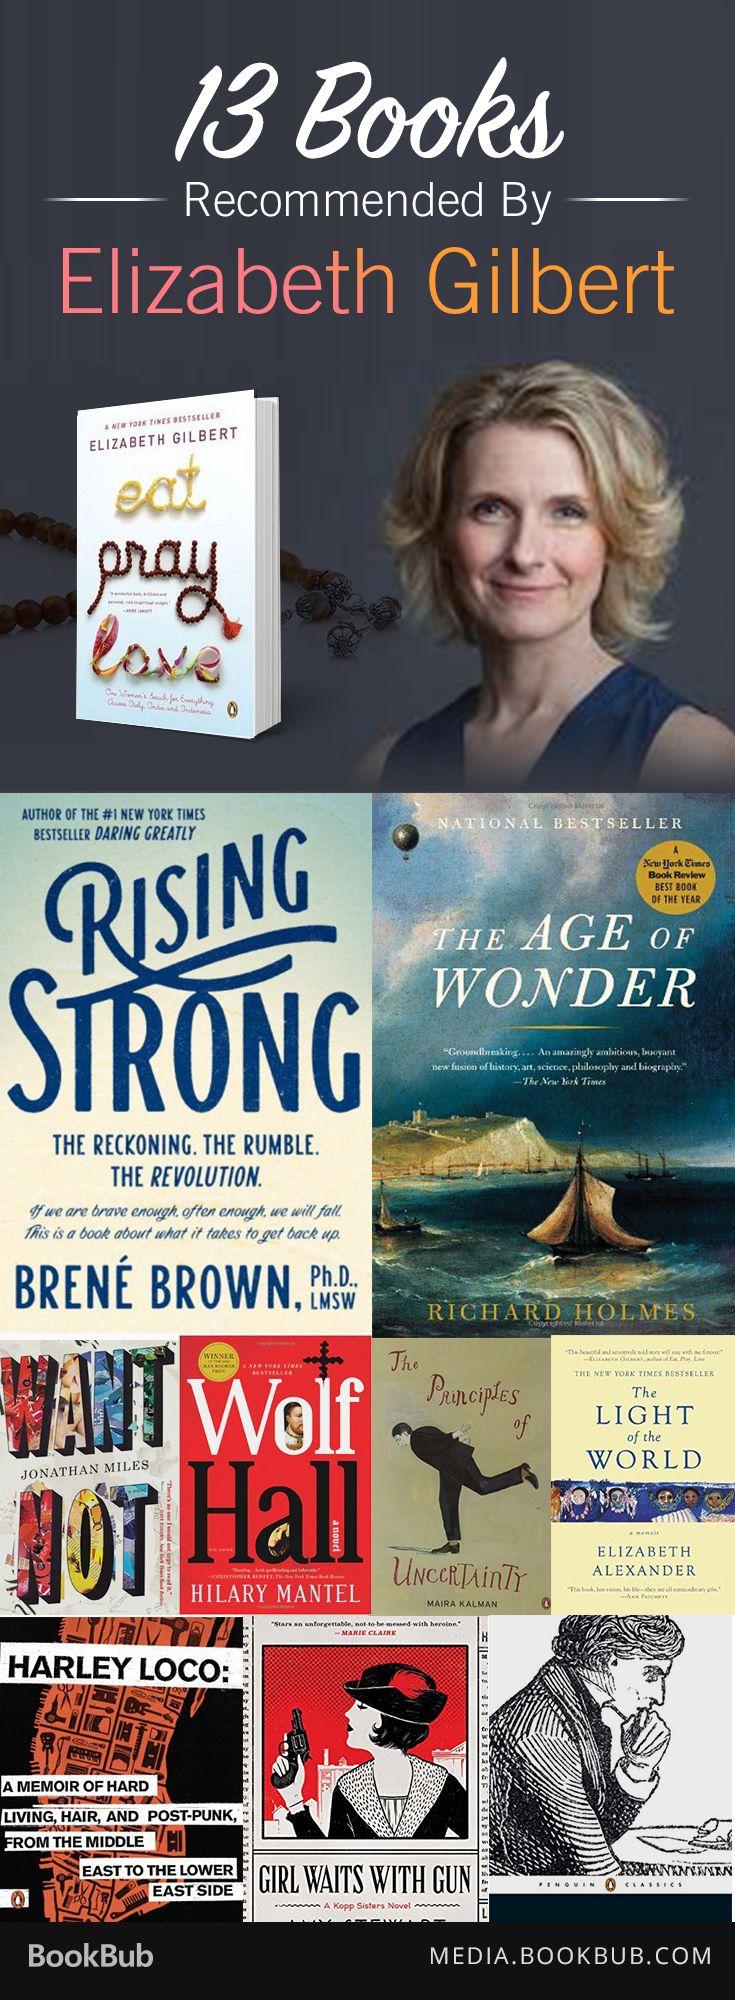 13 Books Recommended By Elizabeth Gilbert